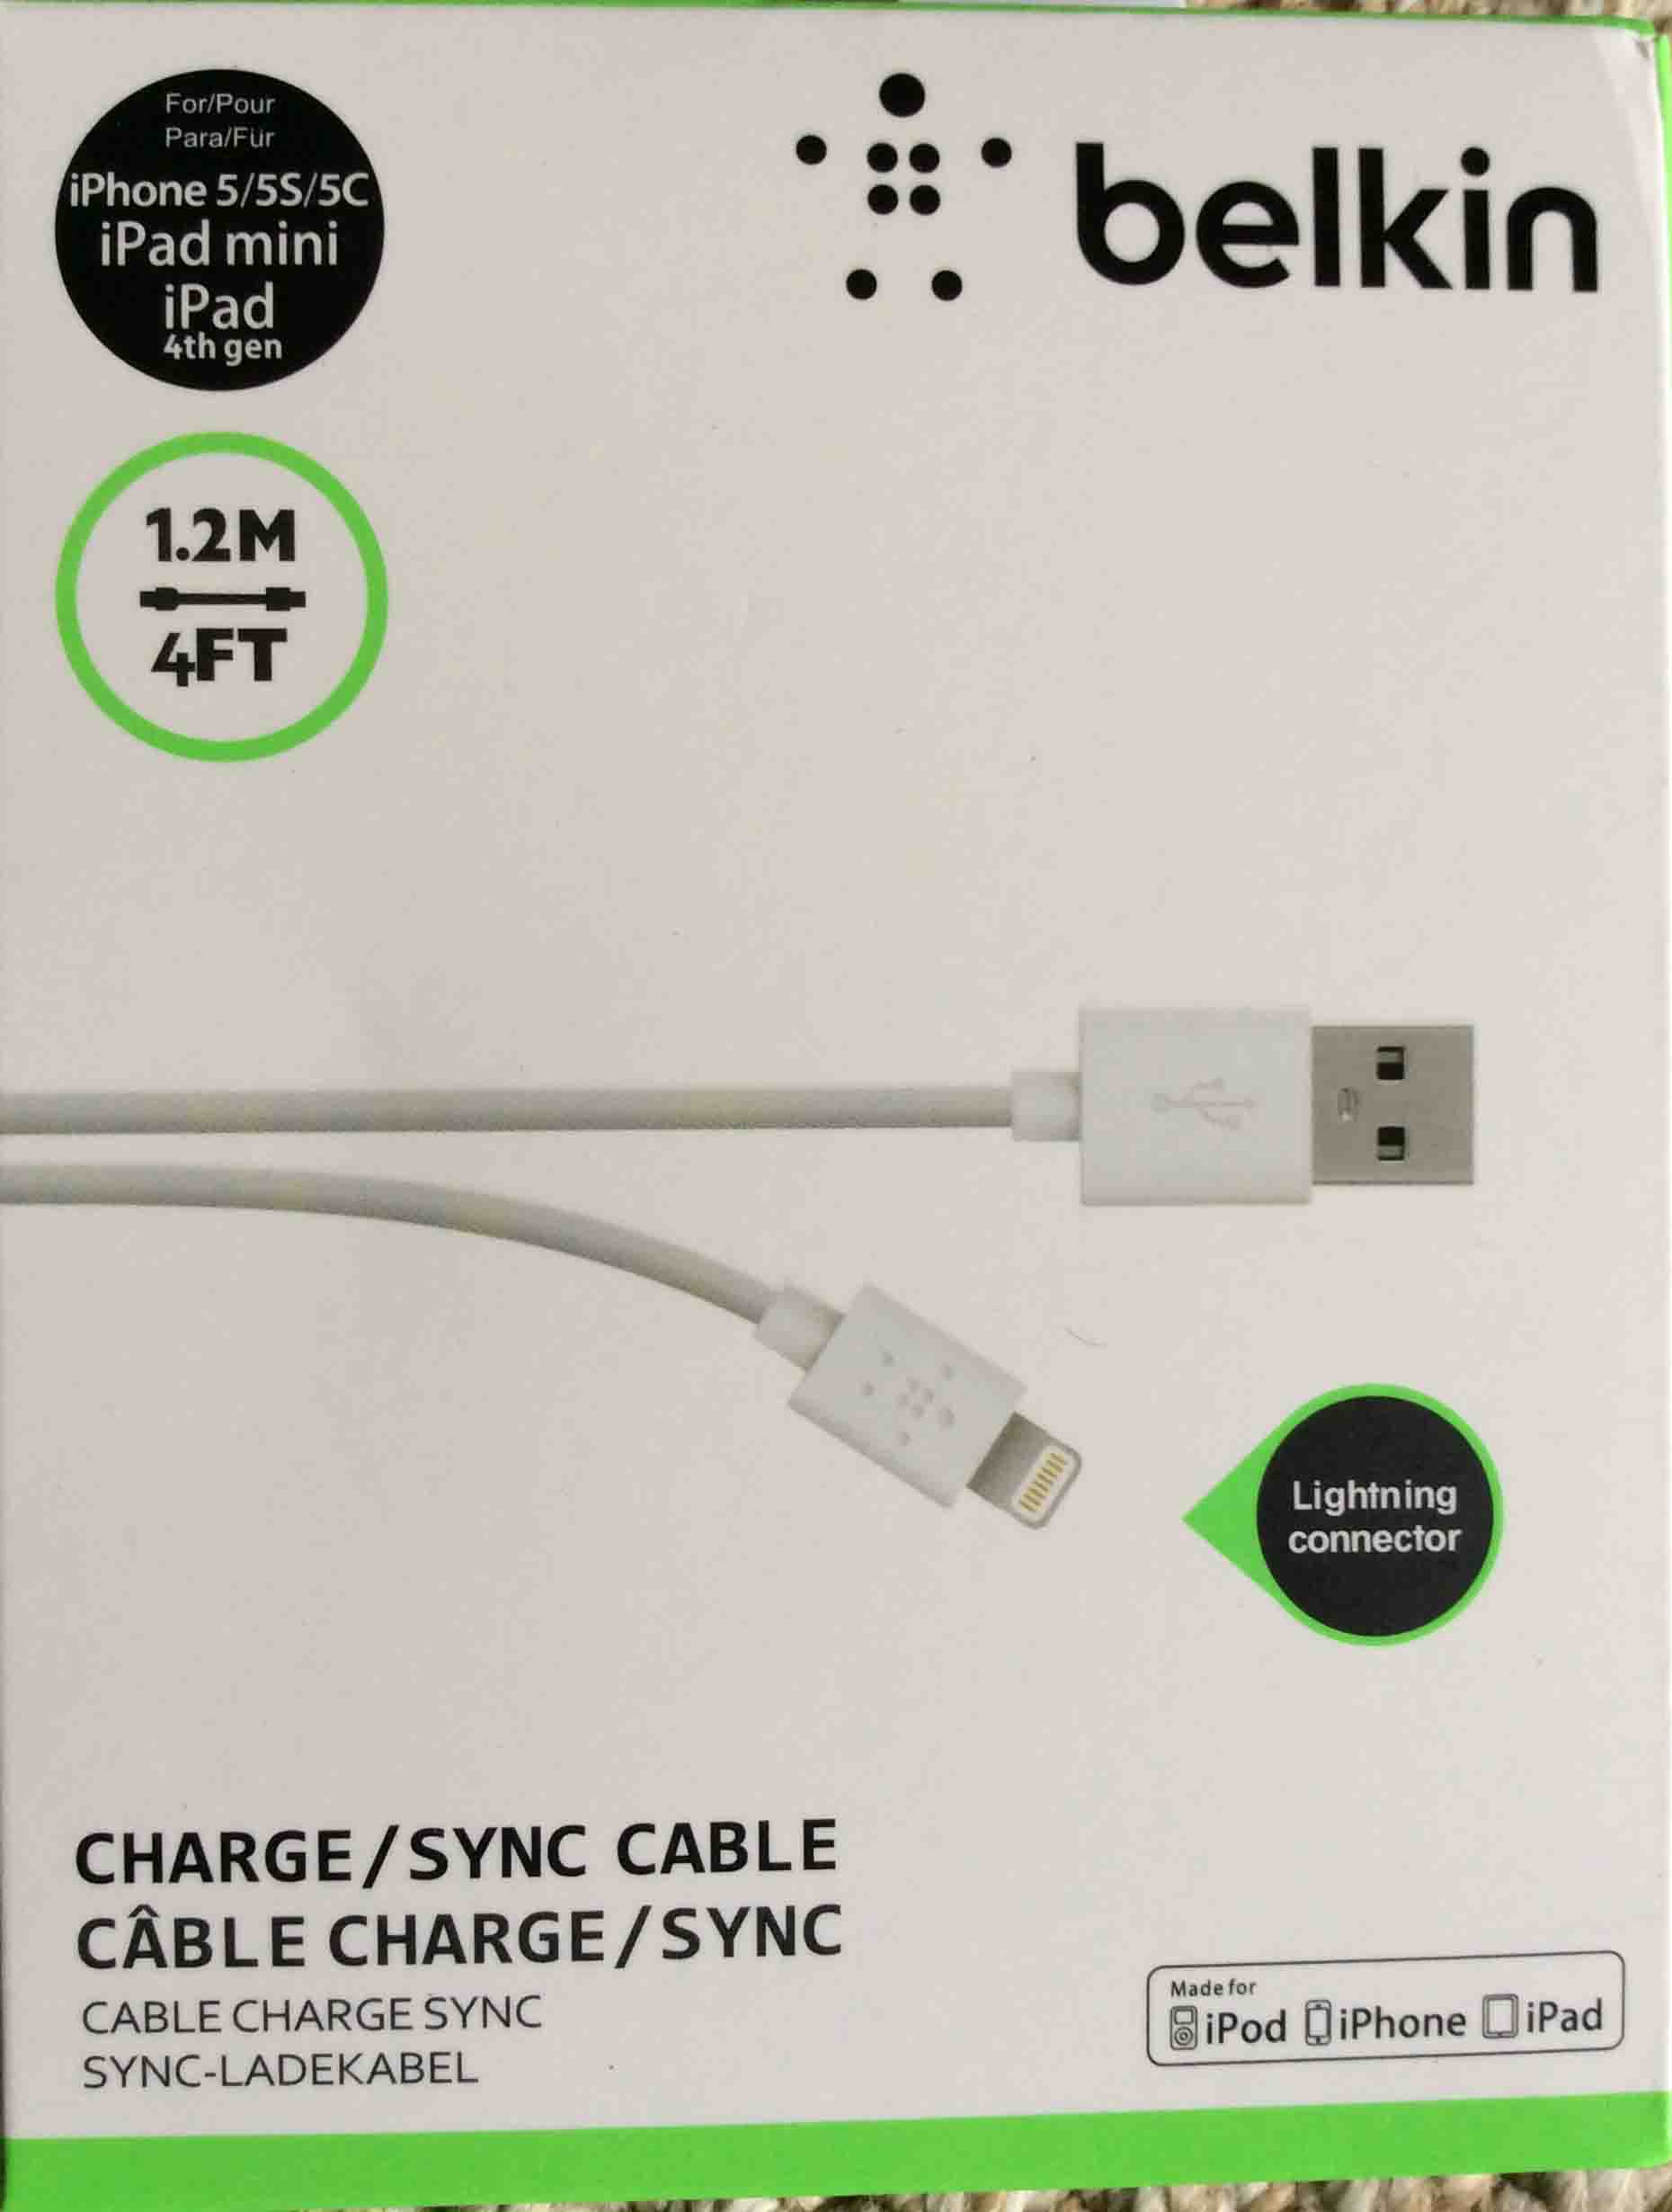 Picture of front of original package for the Belkin lightning USB cable. 2e40947d0c17a